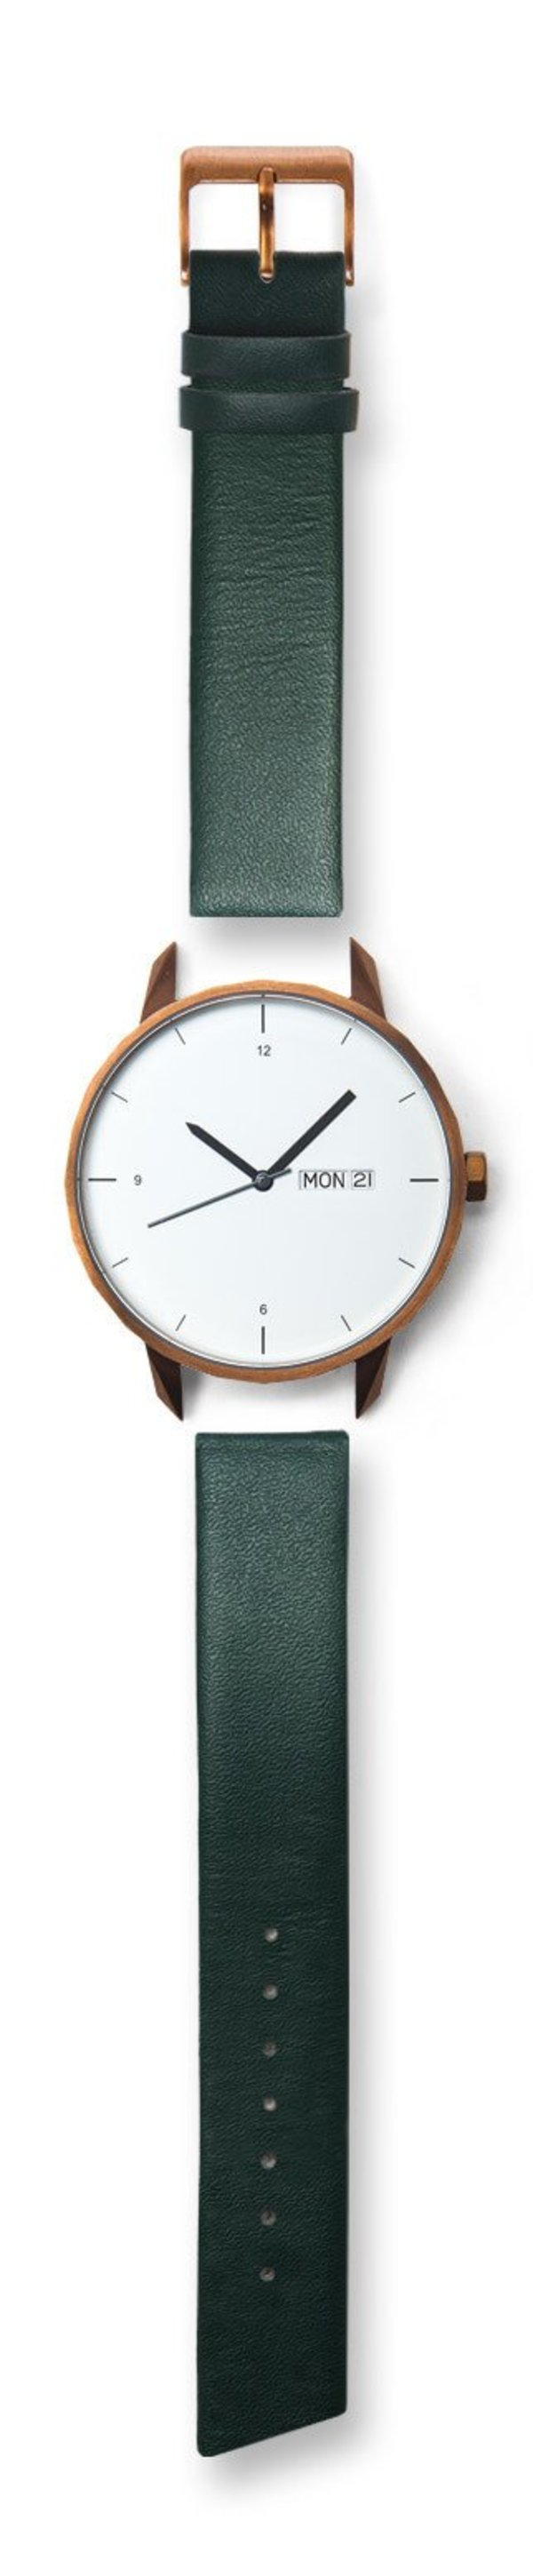 Tinker Watches 42mm Copper Watch Green Strap